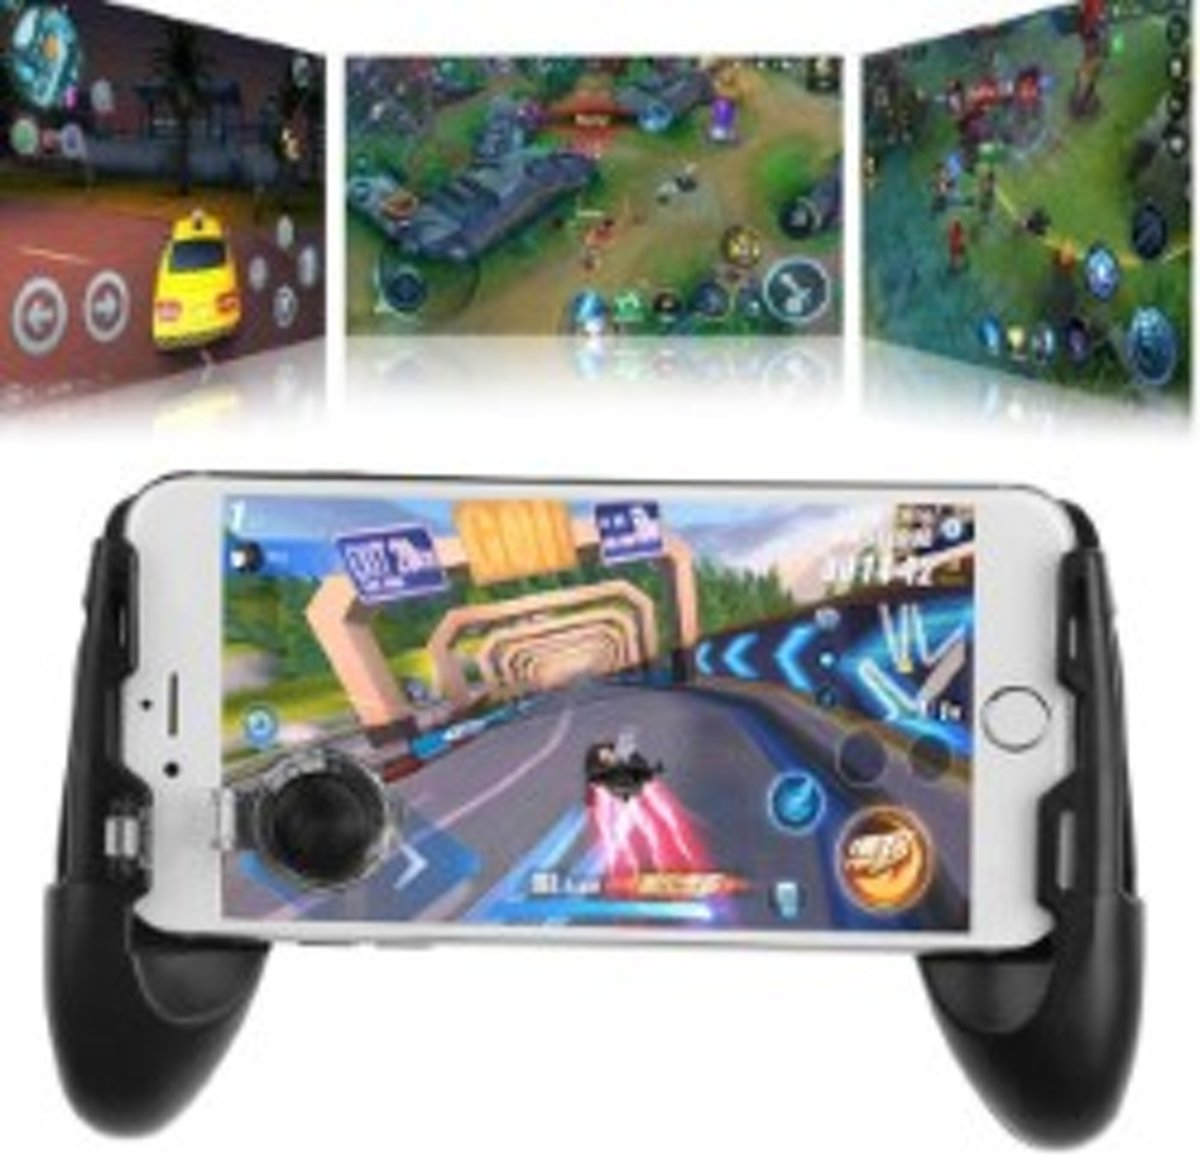 Portable Gamepad - Gamehandles - Smartphone - Iphone/Android - Mobiele Telefoon - PUBG/Fortnite/FPS/Shooters